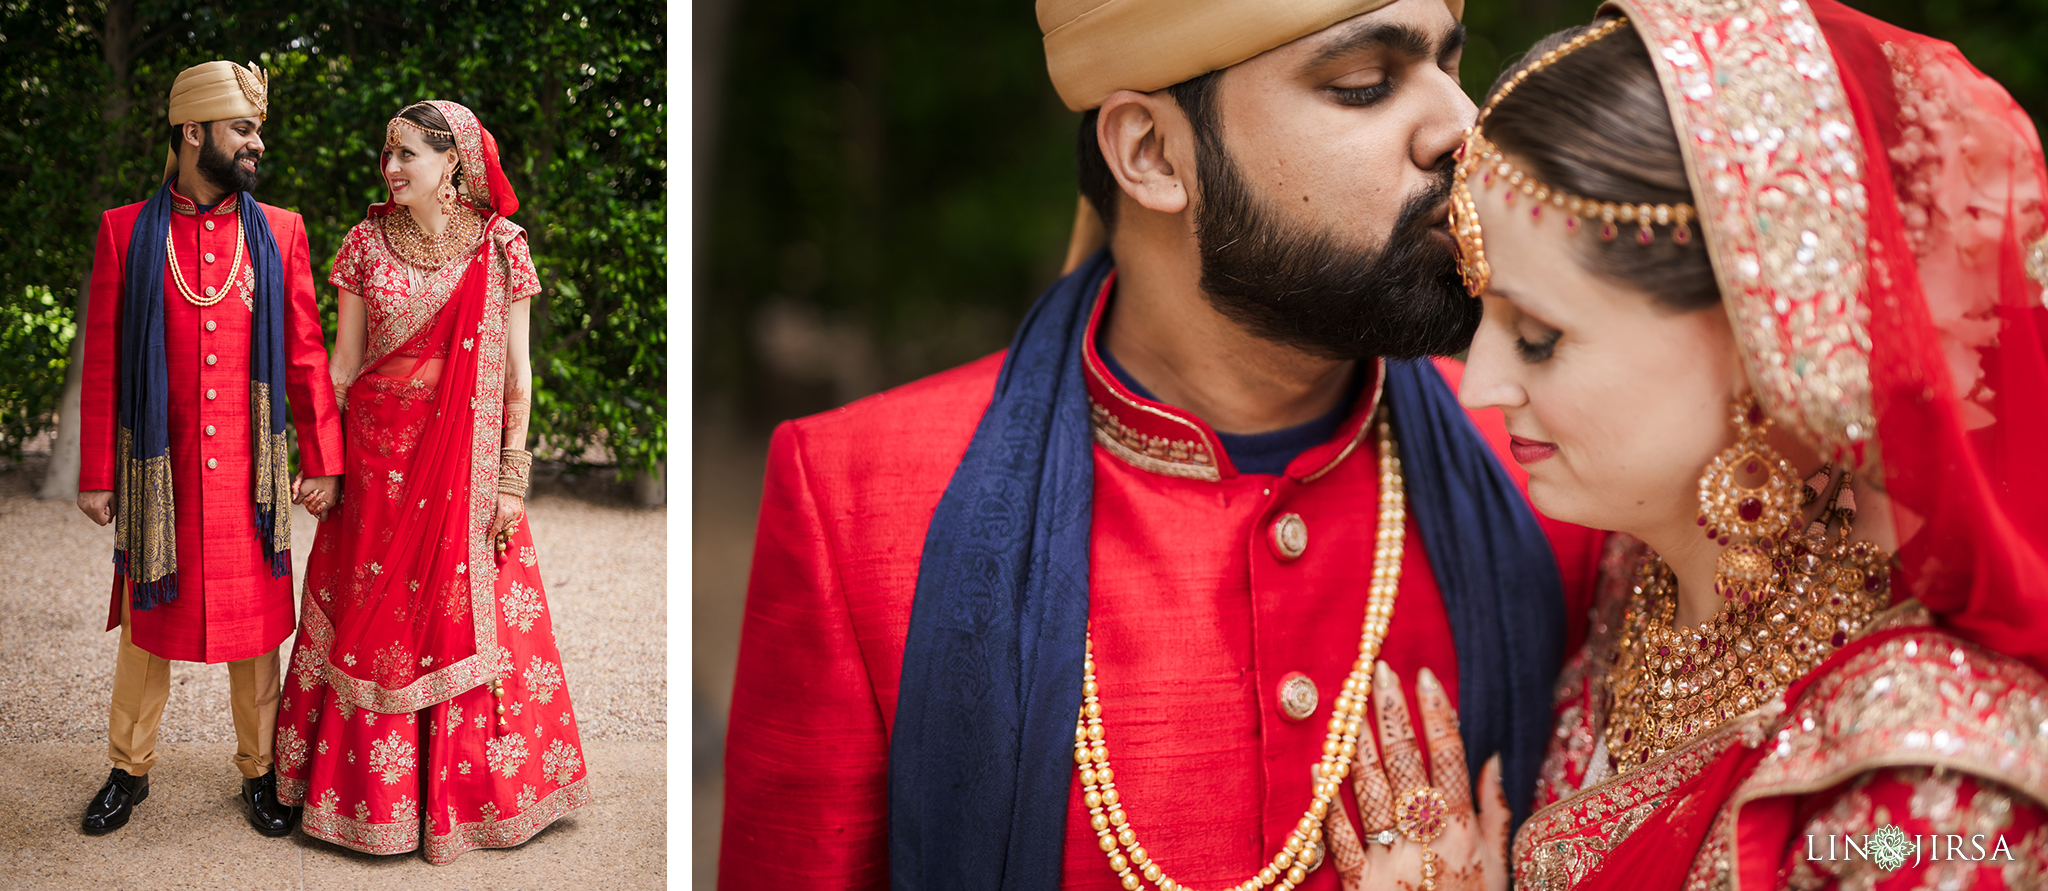 13 Hotel Irvine Multicultural Indian Wedding Photography